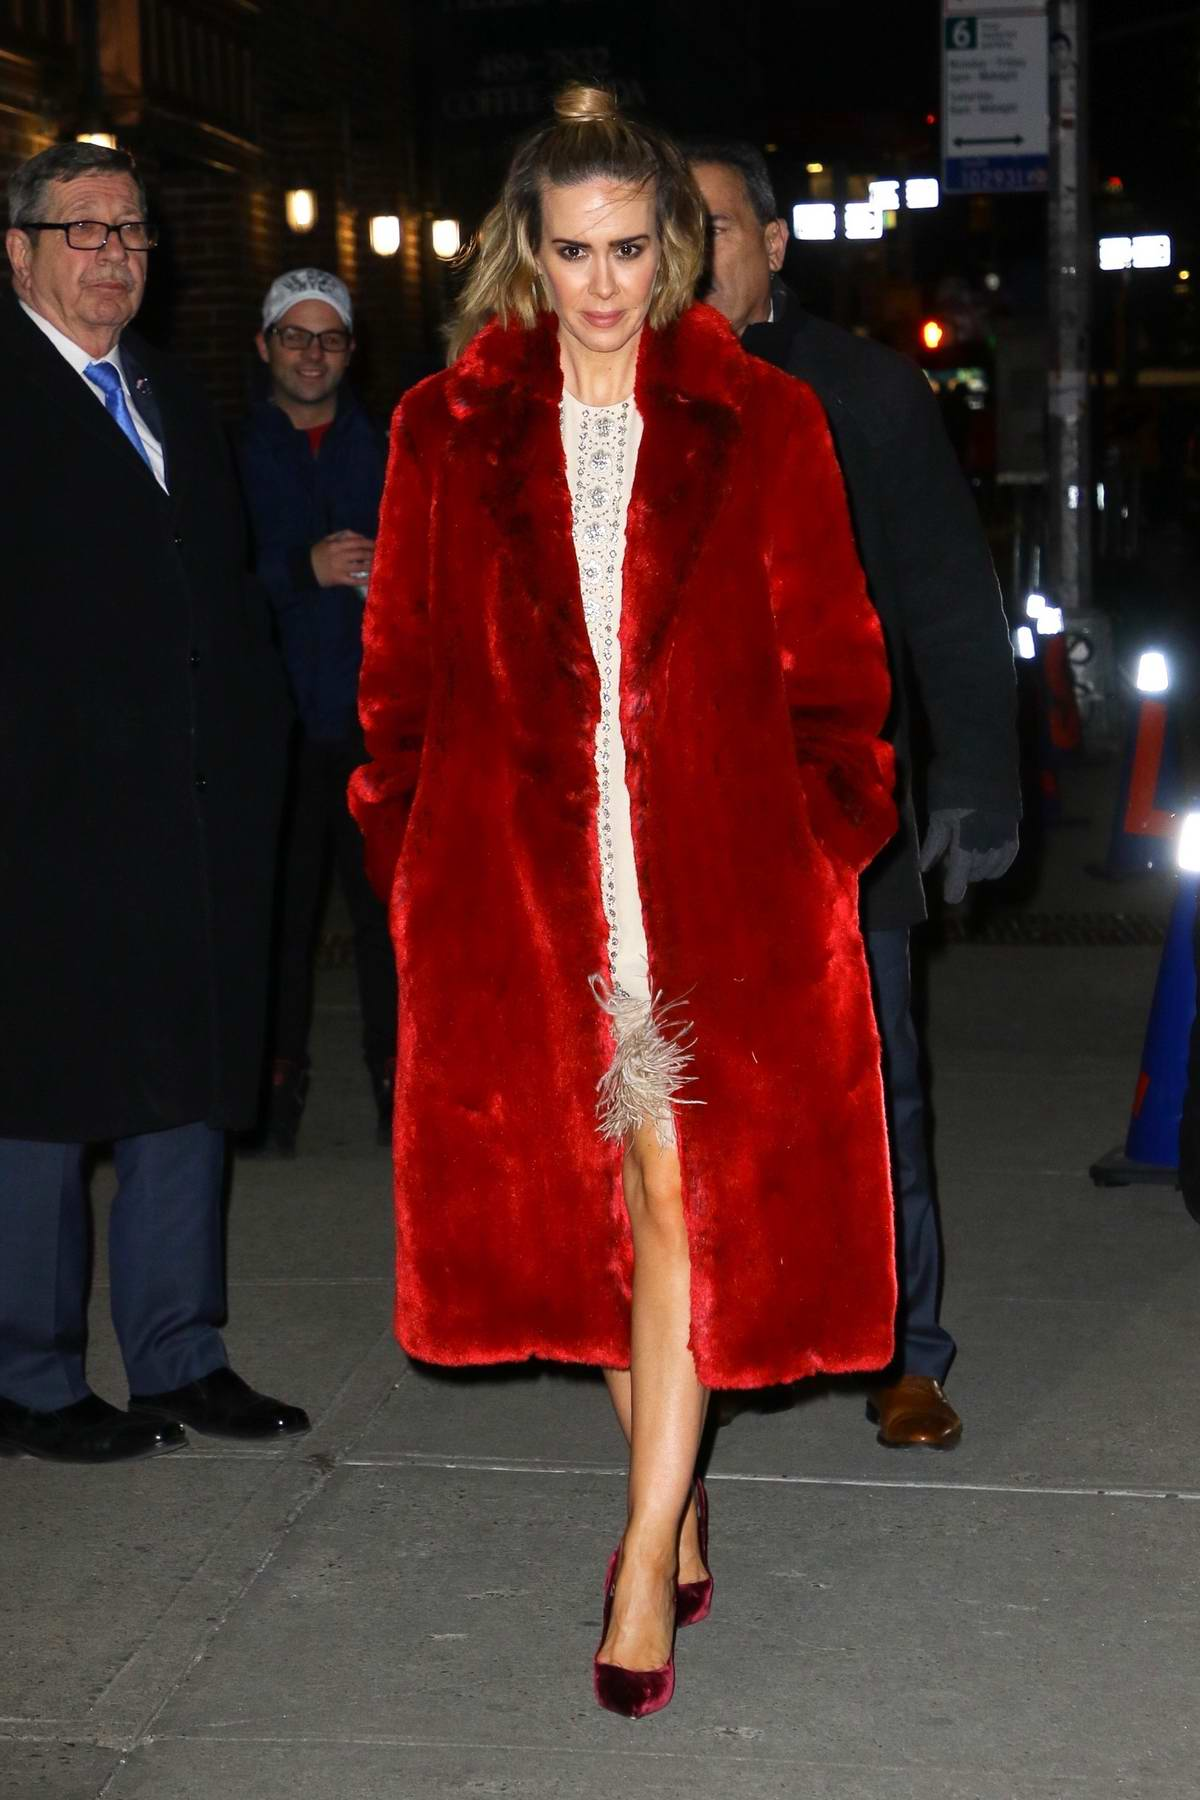 Sarah Paulson wears a red fur coat with a white dress as she arrives to The Late Show with Stephen Colbert in New York City